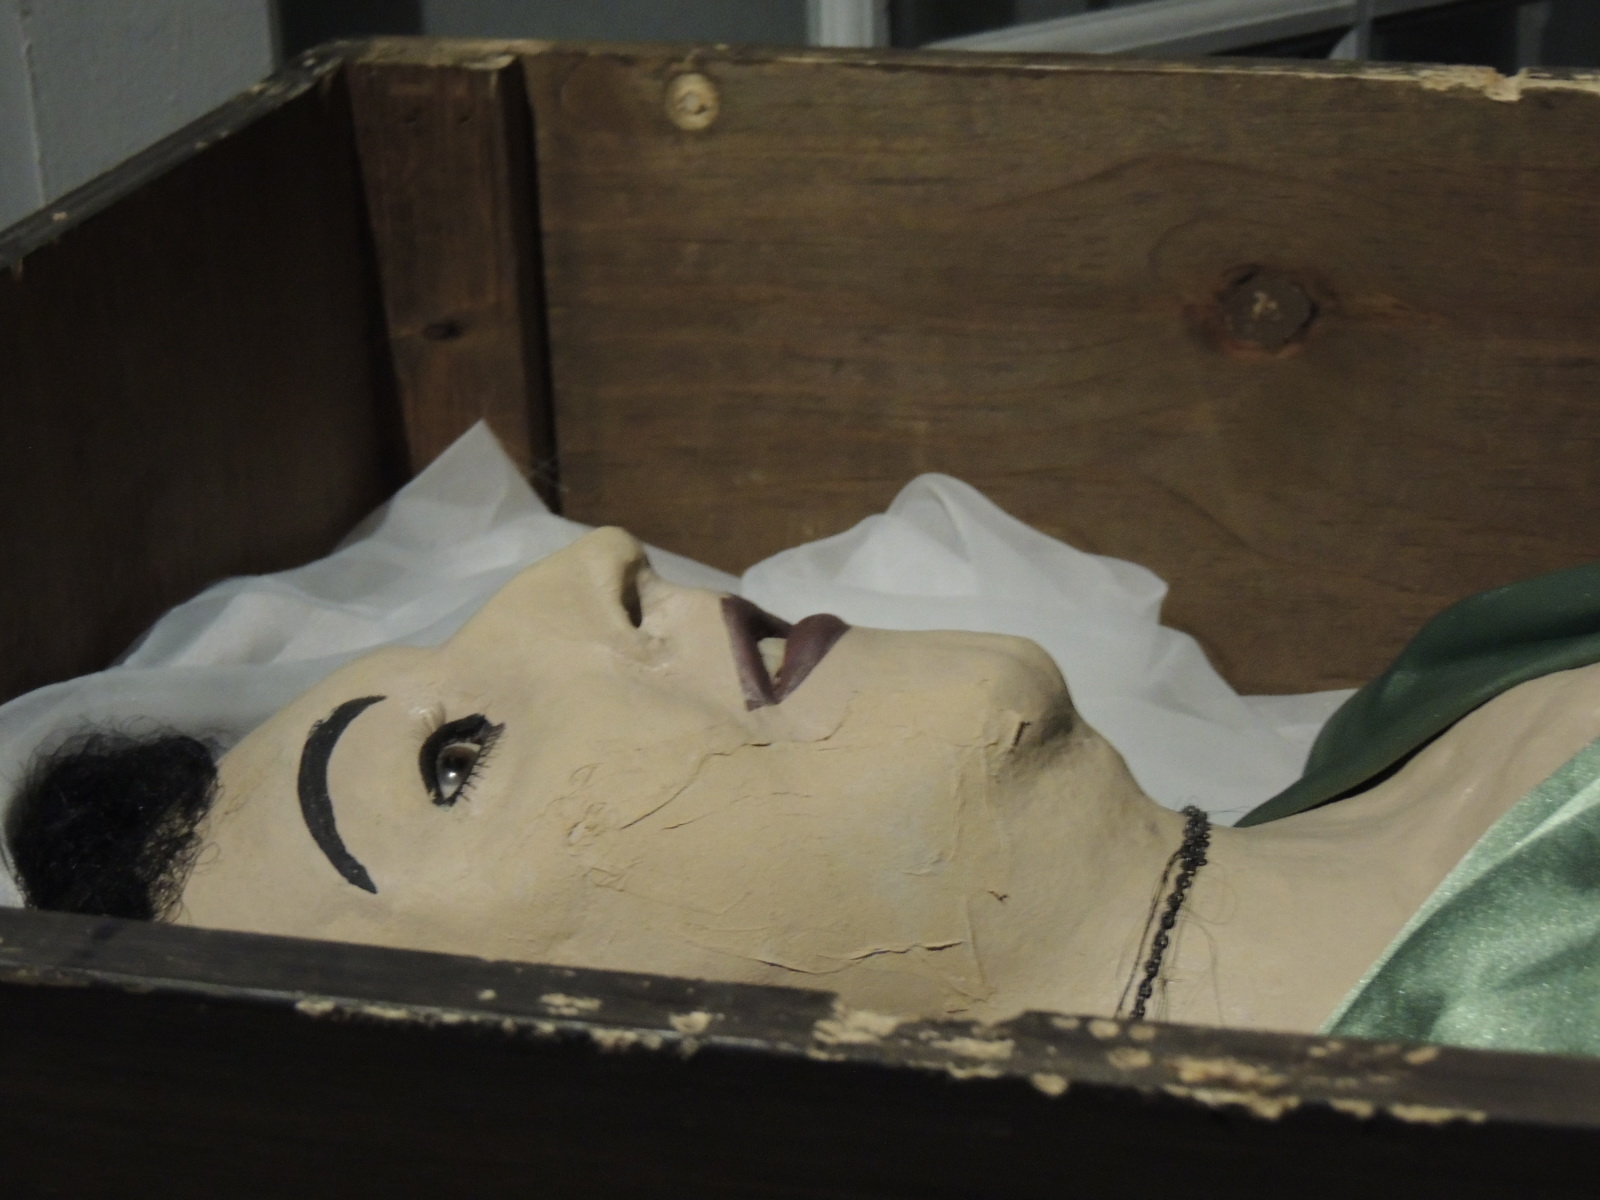 Body of Maria Elena Milagro de Hoyos , the object of Carl von Casel's affection.